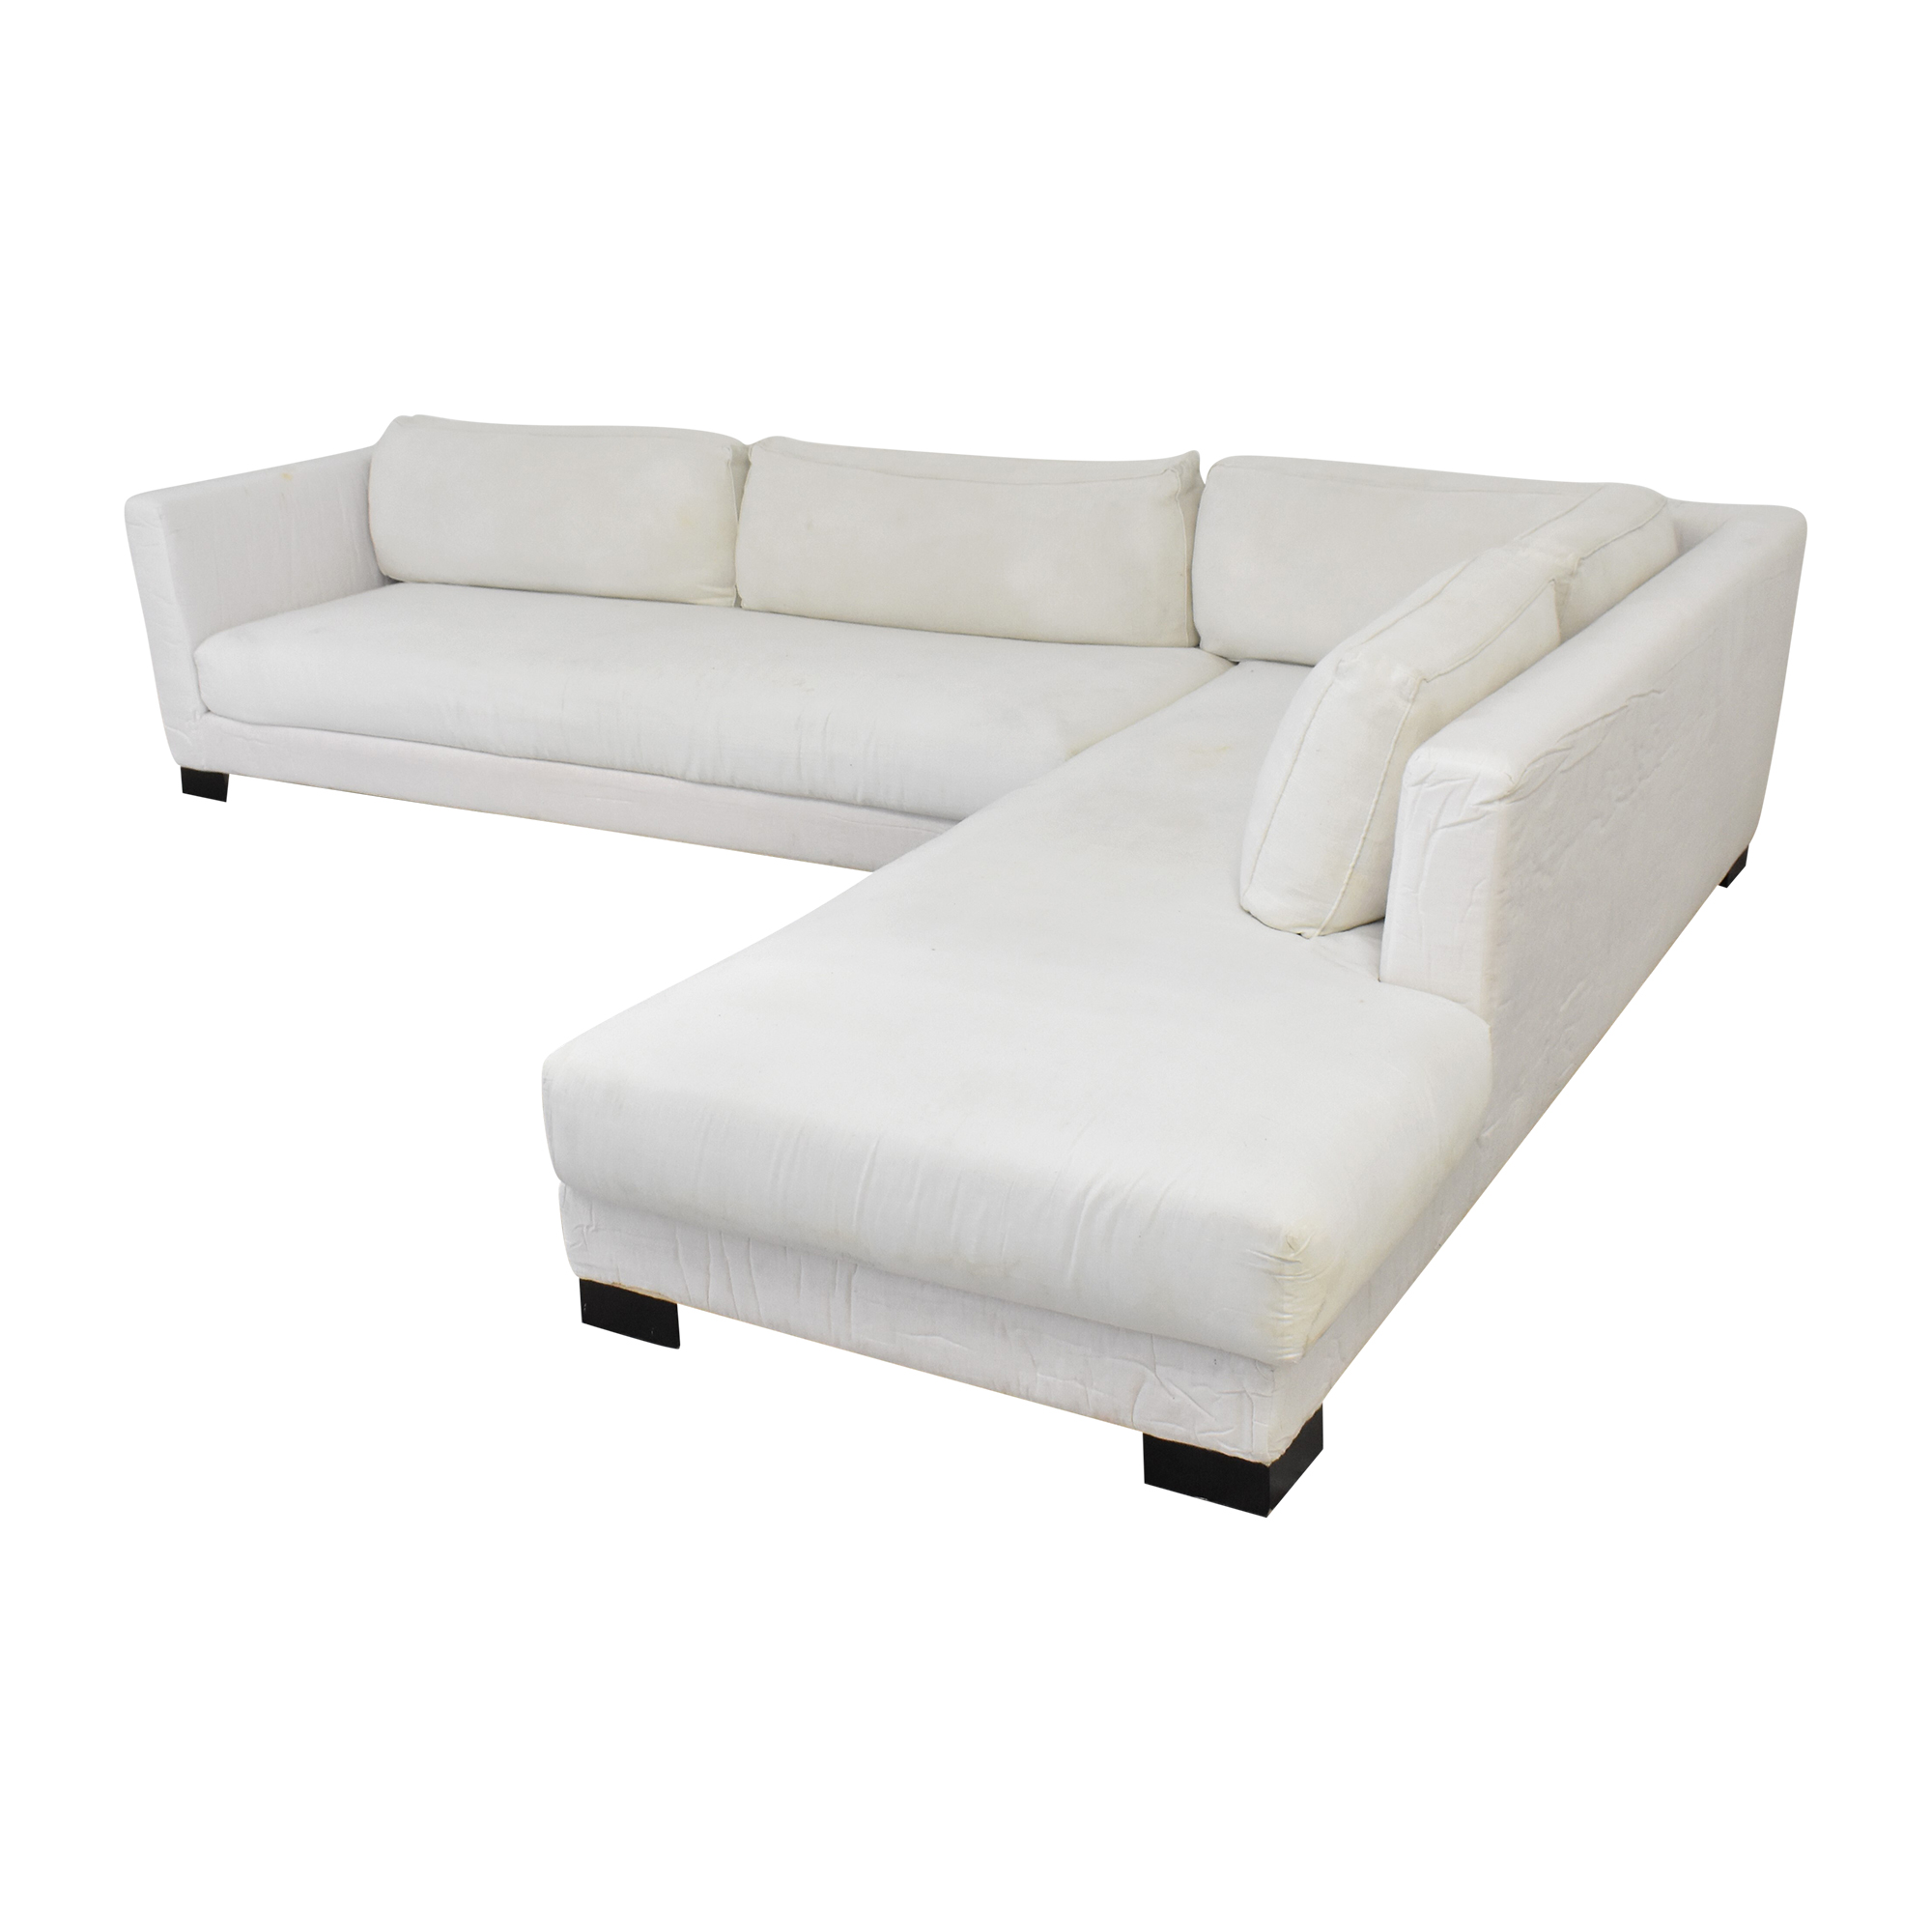 Verzelloni Verzelloni Link Sectional Sofa with Chaise price